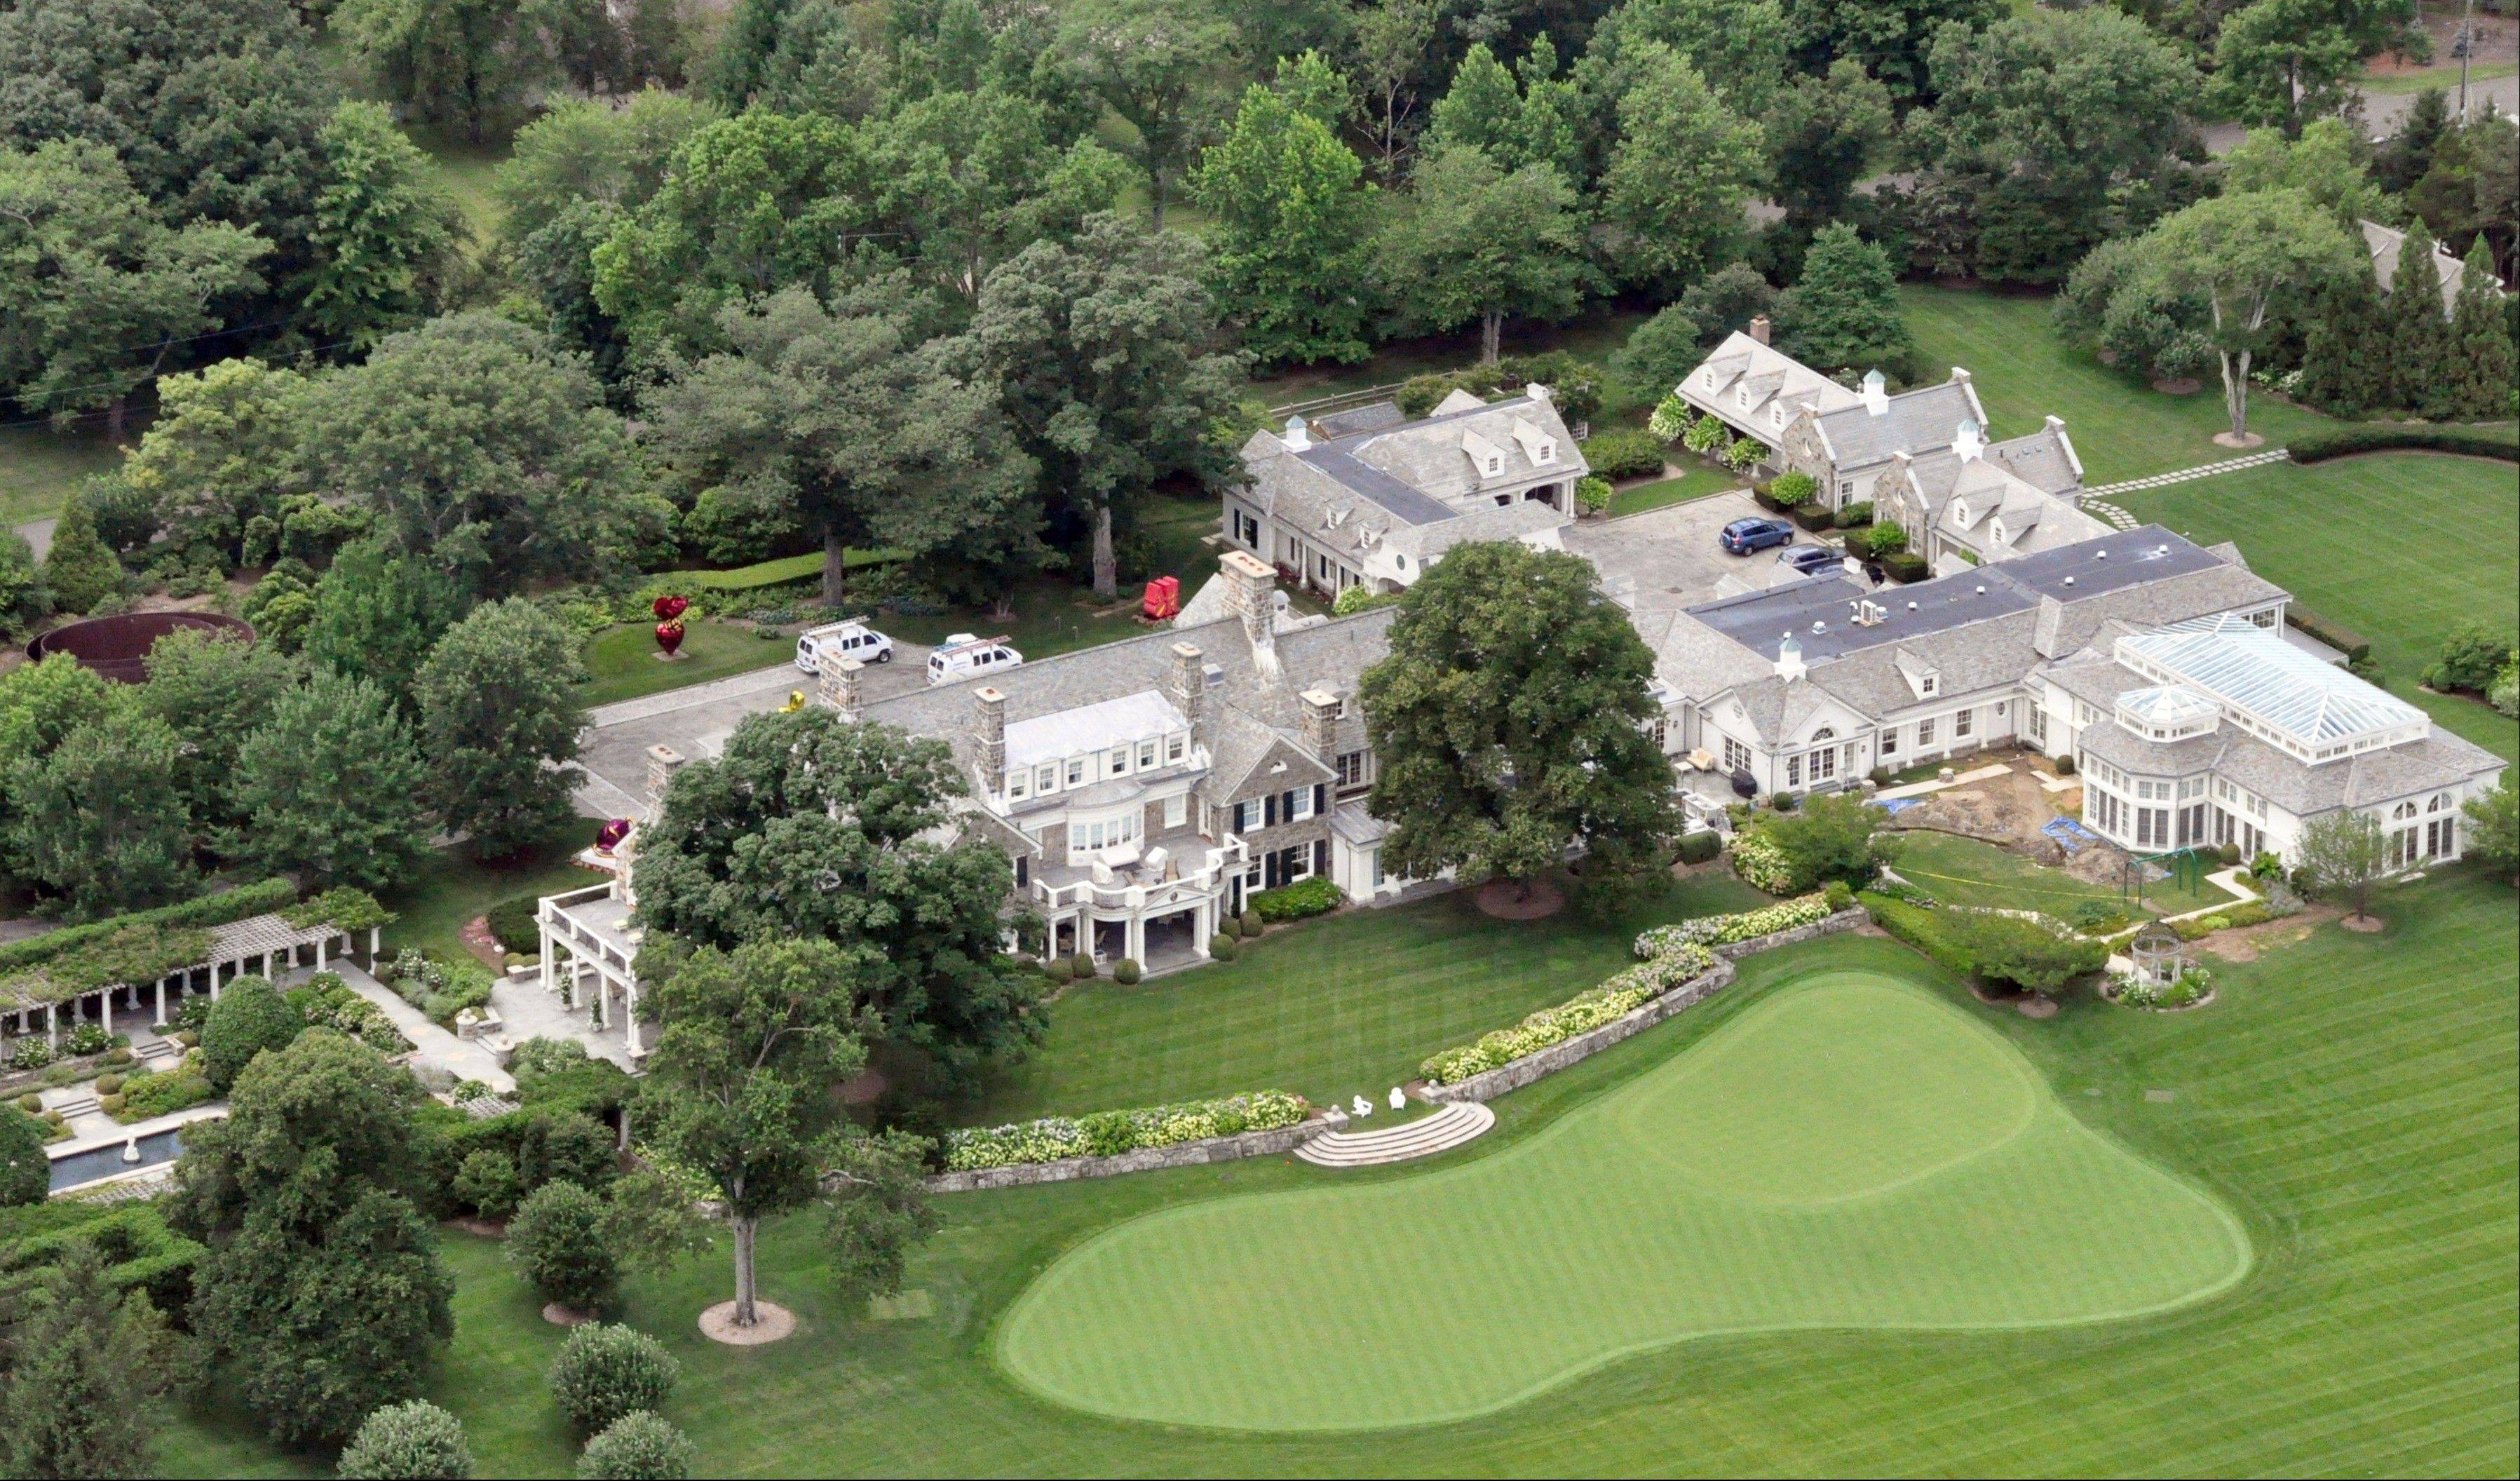 This aerial photograph shows the Greenwich, Conn. estate belonging to billionaire hedge fund owner Stephen Cohen, Friday, July 26, 2013. Prosecutors charged Cohen's company, SAC Capital Advisors, with wire fraud and securities fraud, accusing the Stamford-based company of letting insider trading flourish over a decade and making hundreds of millions of dollars illegally. Cohen has not been charged.